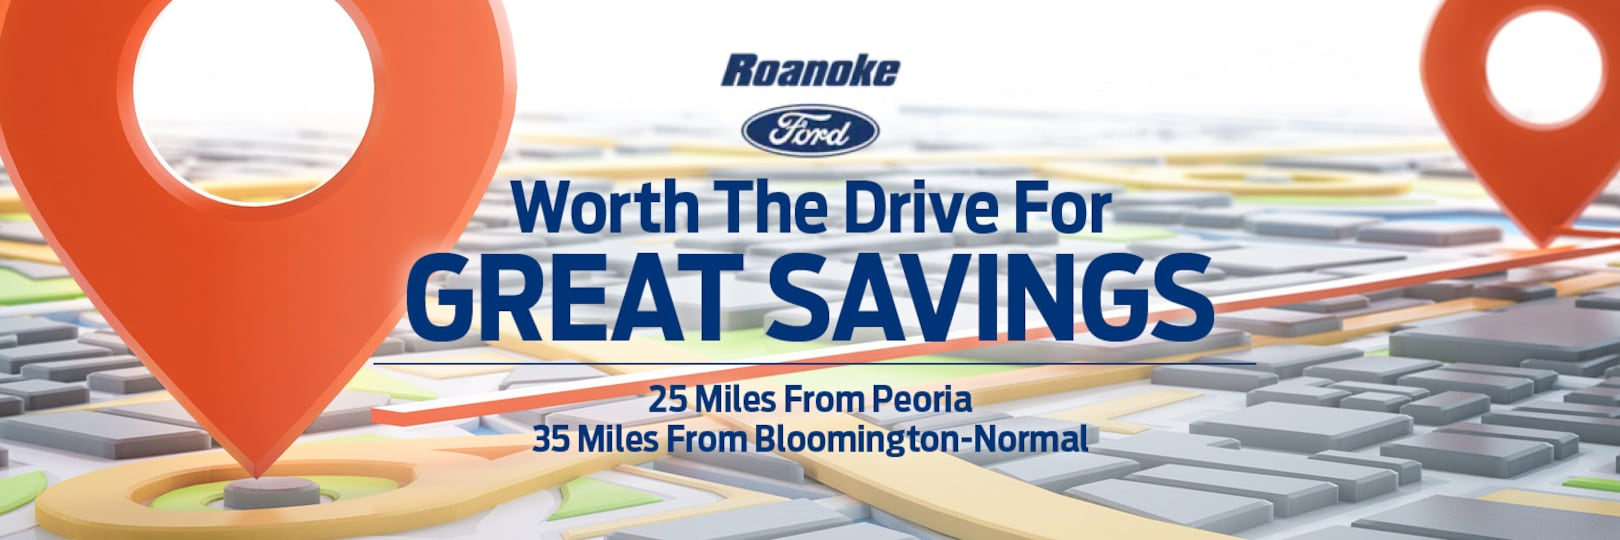 Ford Dealership Peoria Il >> Roanoke Ford Ford Dealership In Roanoke Il